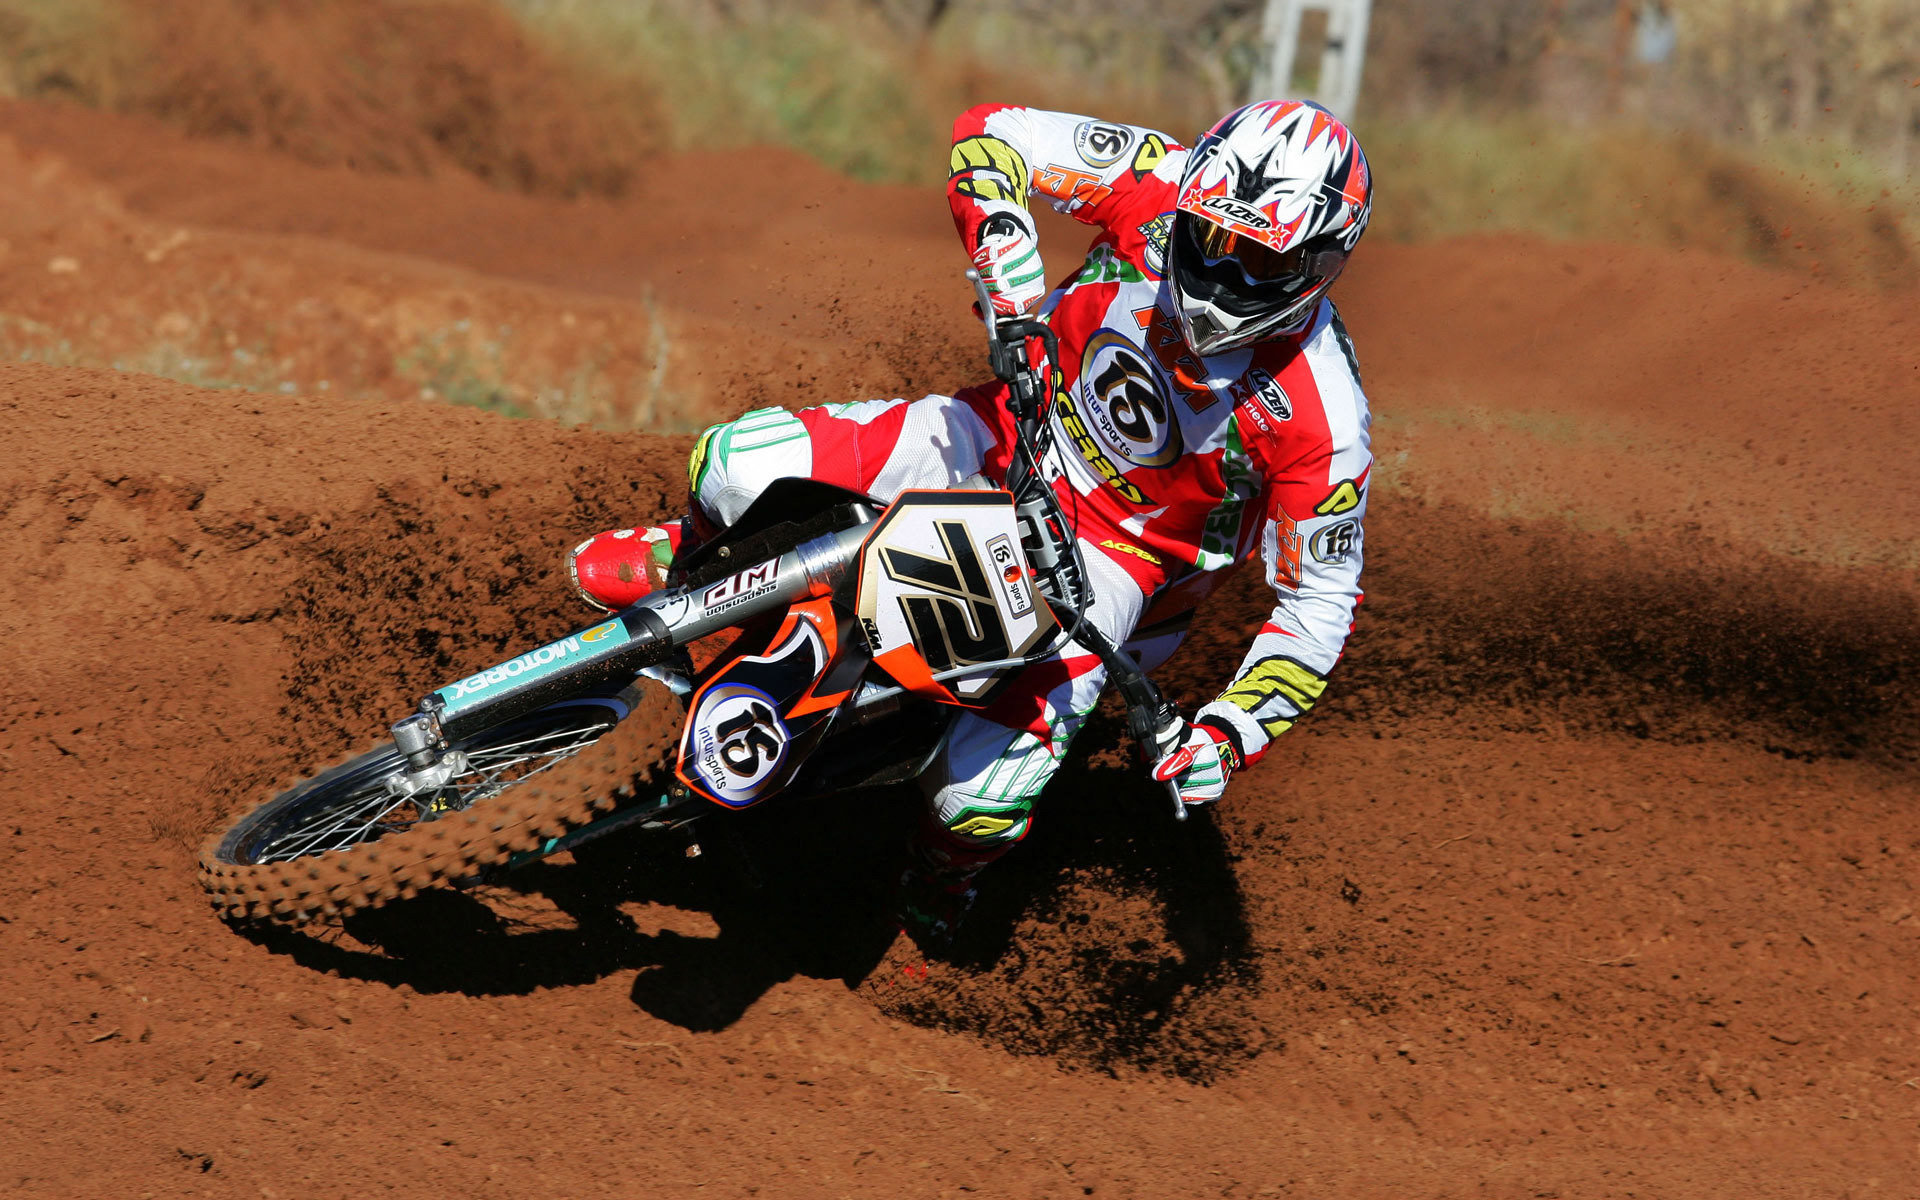 Download hd 1920x1200 Motocross (Dirt Bike) desktop background ID:378344 for free